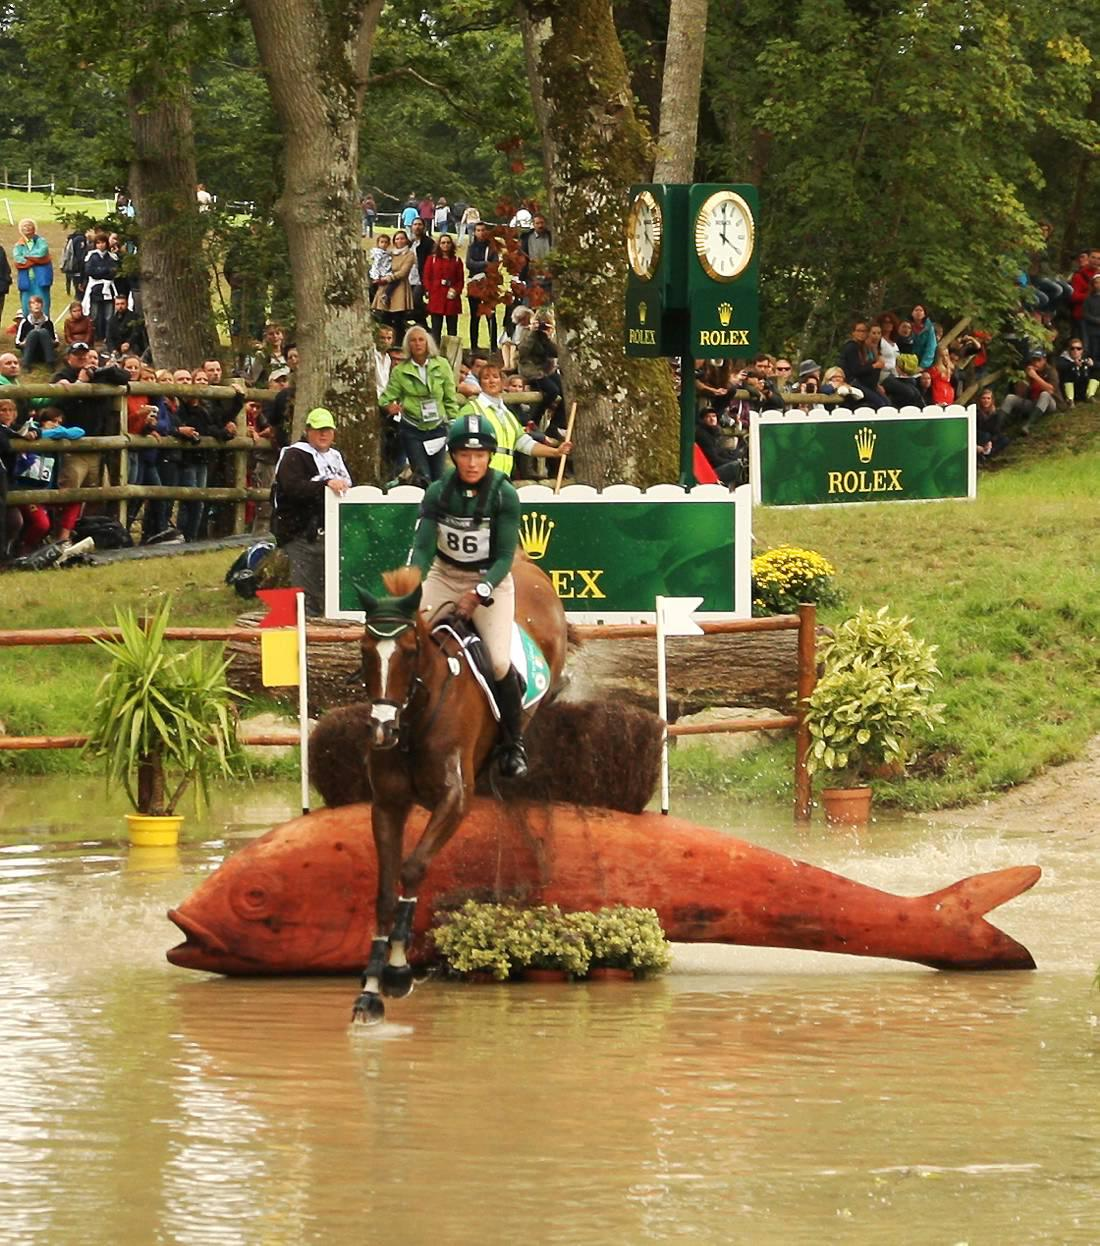 Rollercoaster year for international eventing